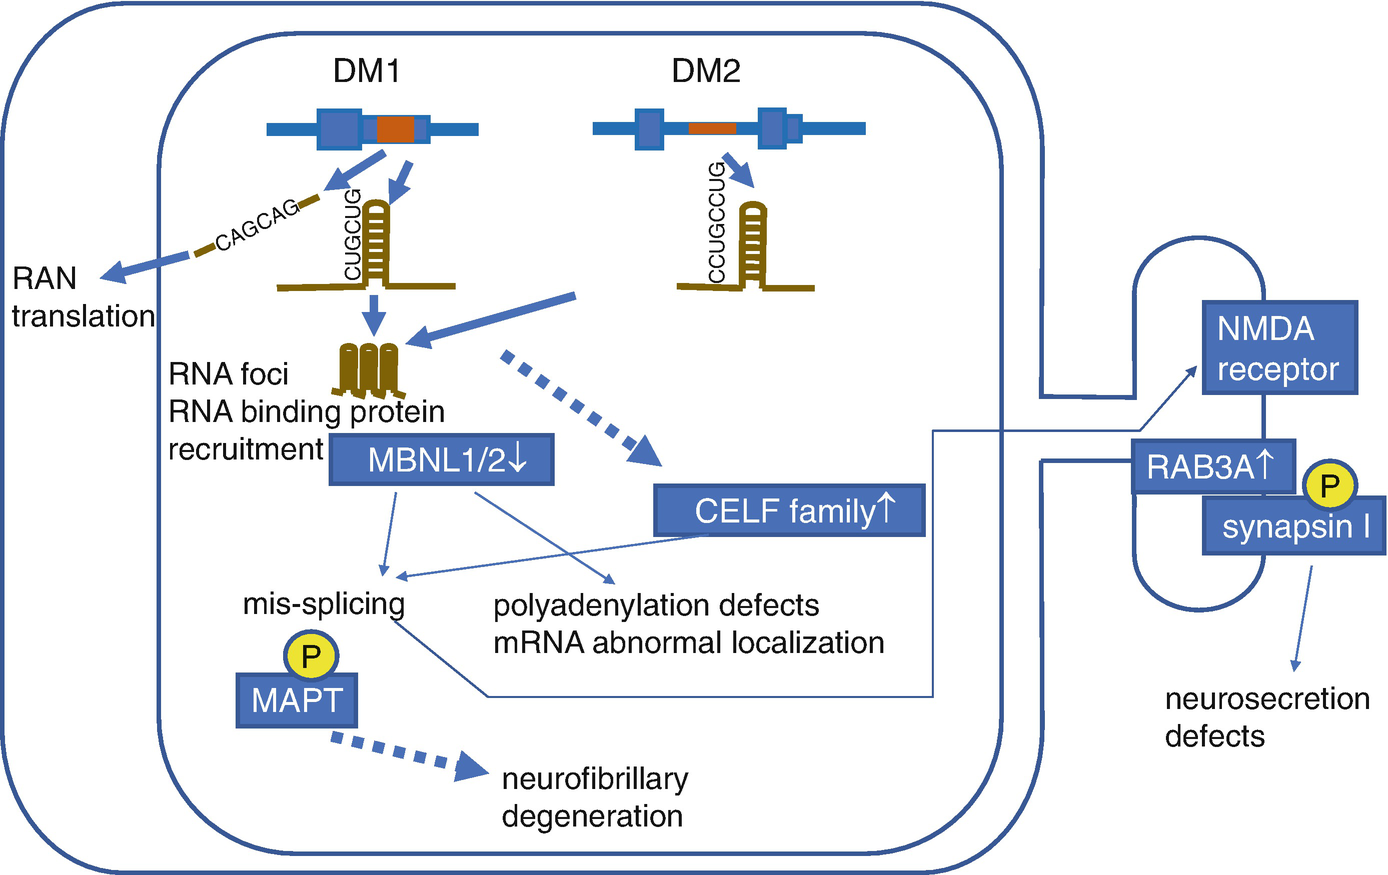 Molecular Defects in the DM Central Nervous System